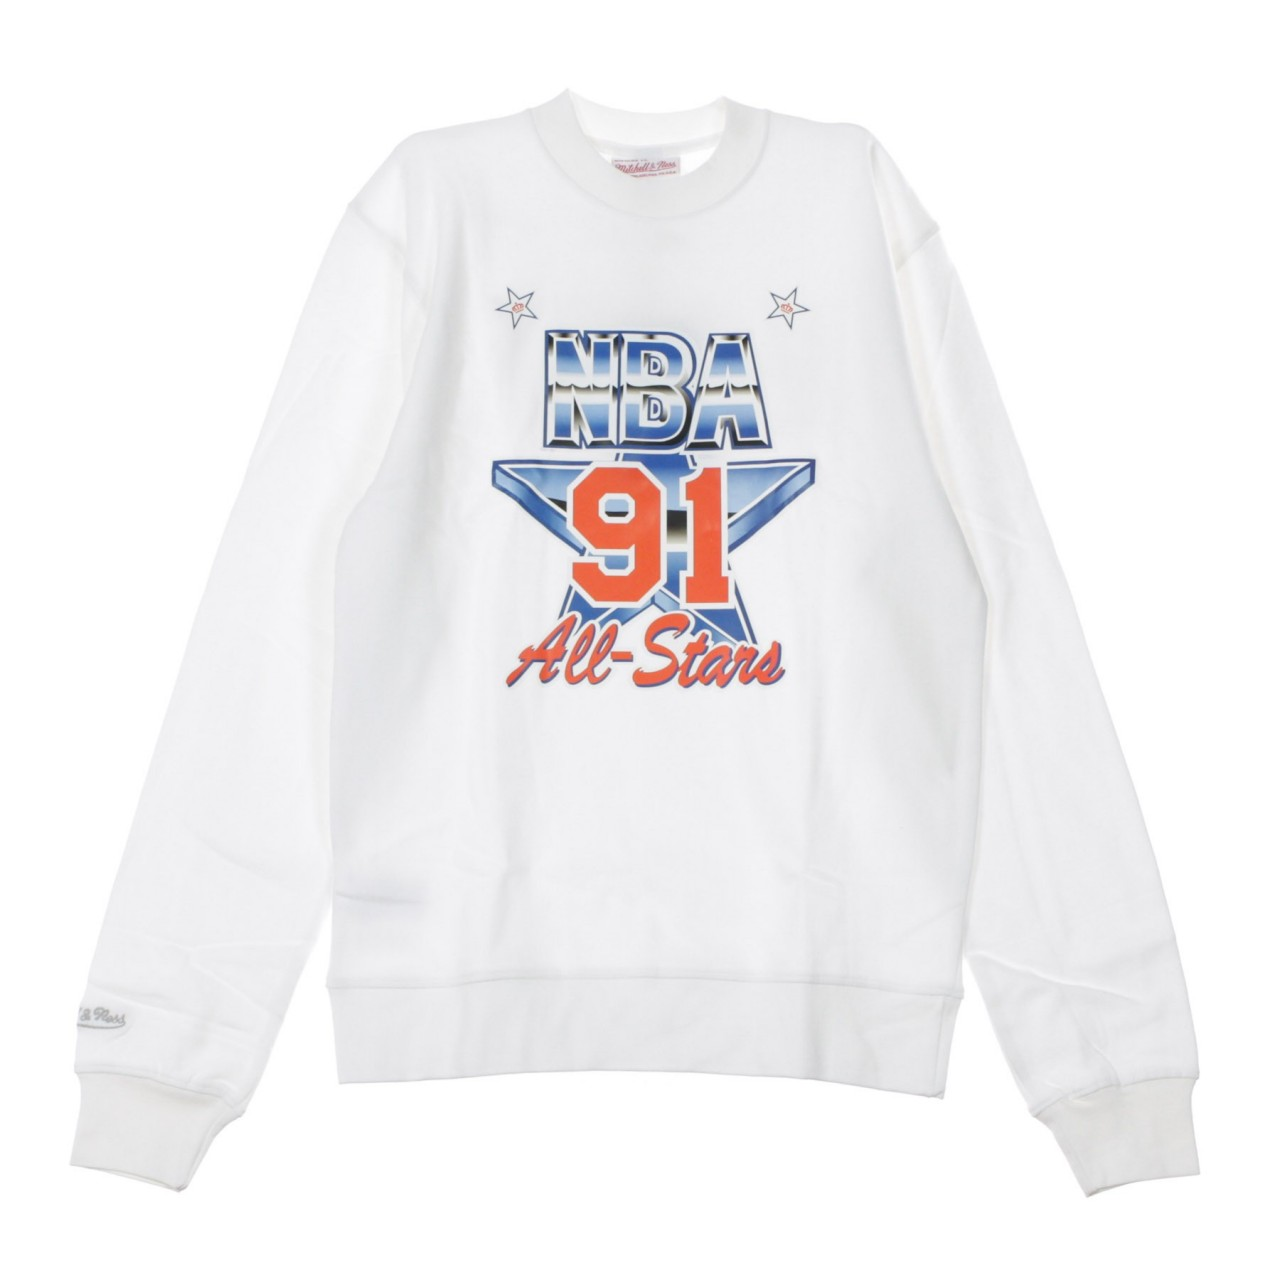 MITCHELL & NESS ASG CREW FLEECE ALL STAR EAST 1991 BMFCMM18375-ASEWHIT